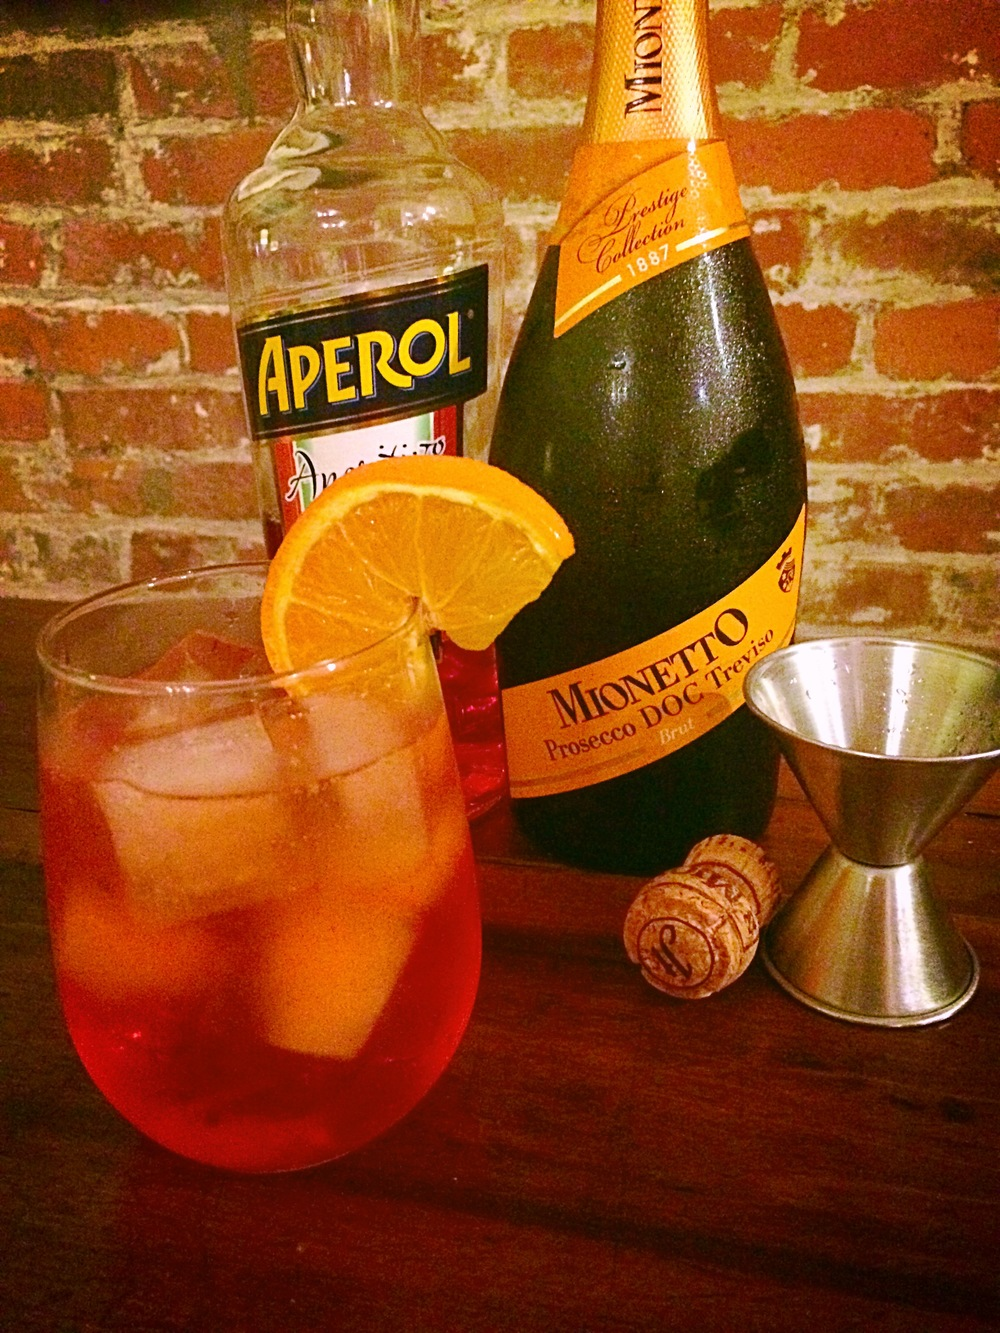 The Aperol Spritz was a new find for me this past September while I was traveling through Italy and I have to say it is now one of my favorites. The combination of Prosecco and Aperol is so refreshing and perfect as an aperitif! Find out how to make it here!